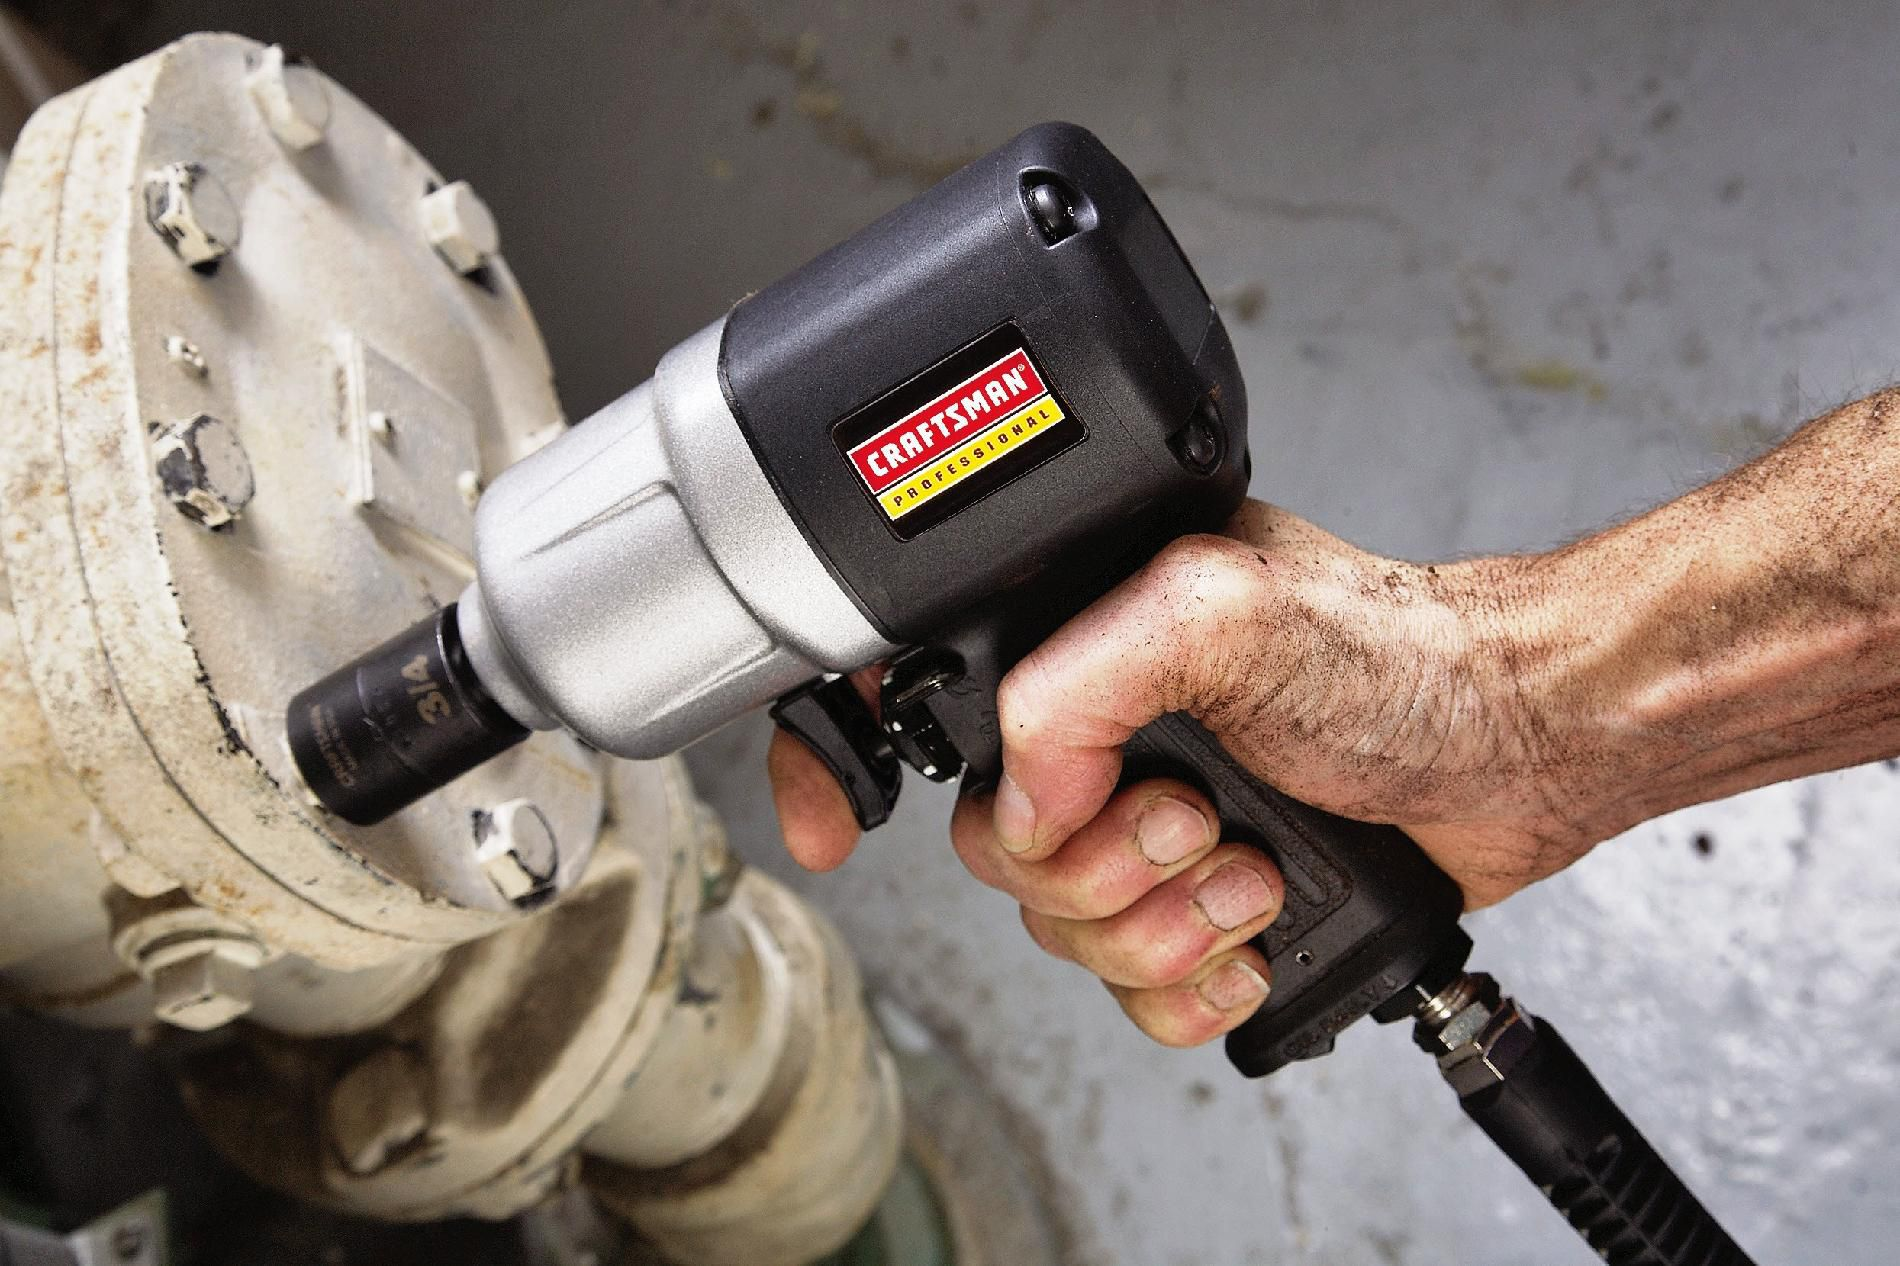 Craftsman Professional 1/2-in. Professional Composite Impact Wrench